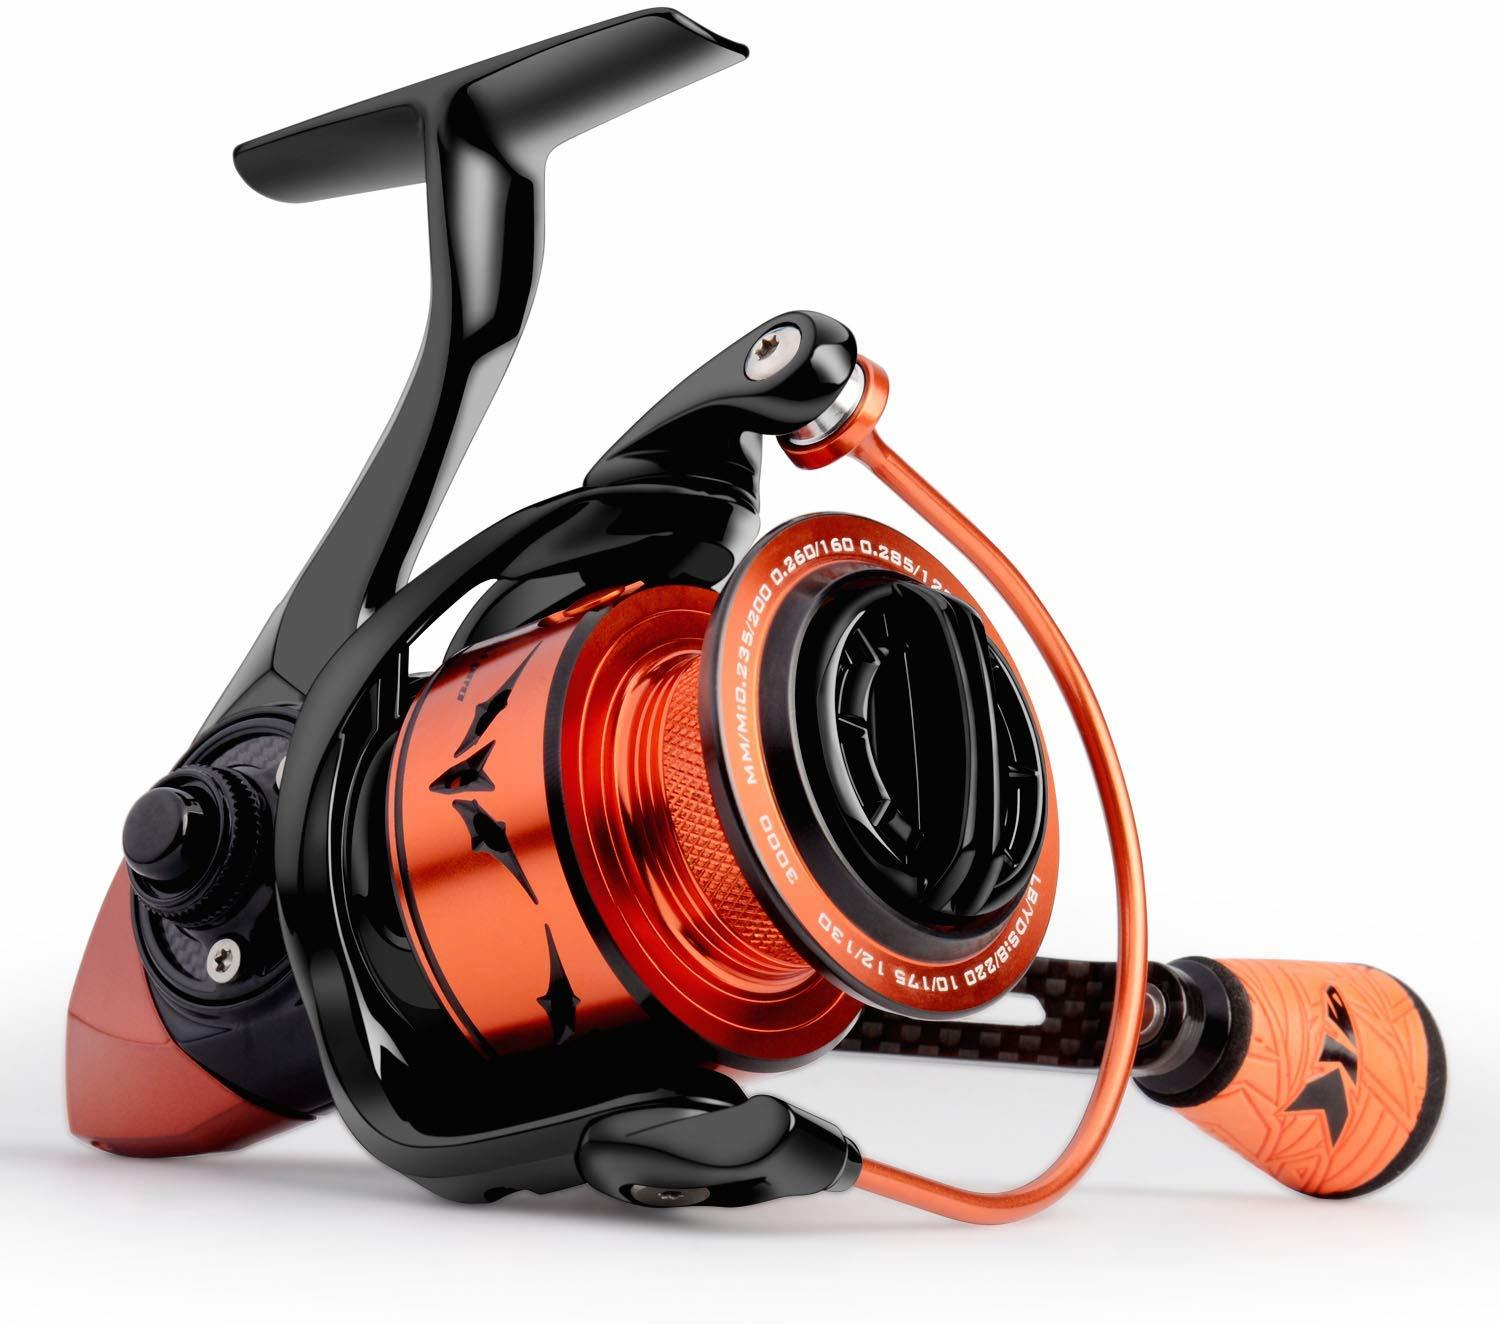 Kastking speed demon pro spinning reel